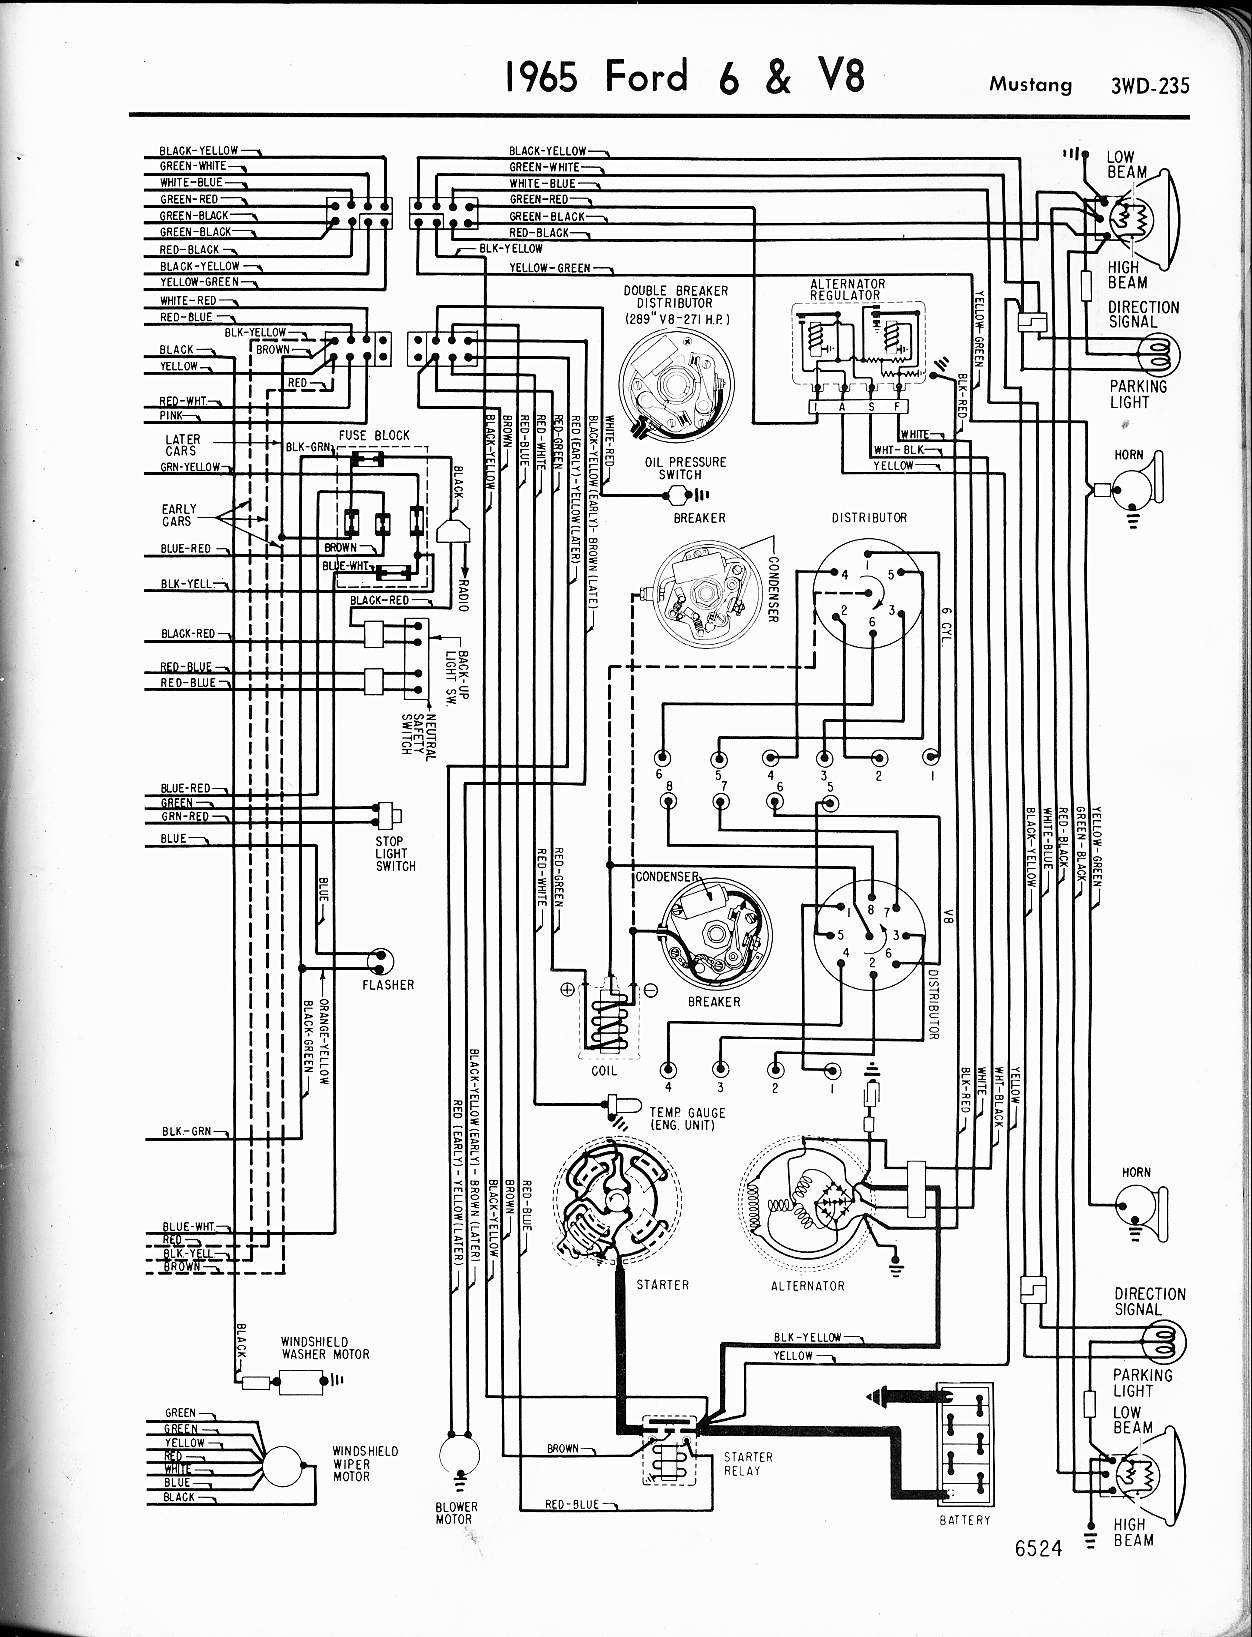 1965_mustang_wiring_2 1968 mustang wiring diagram manual 1968 mustang repair manual Ford 545C Tractor at n-0.co